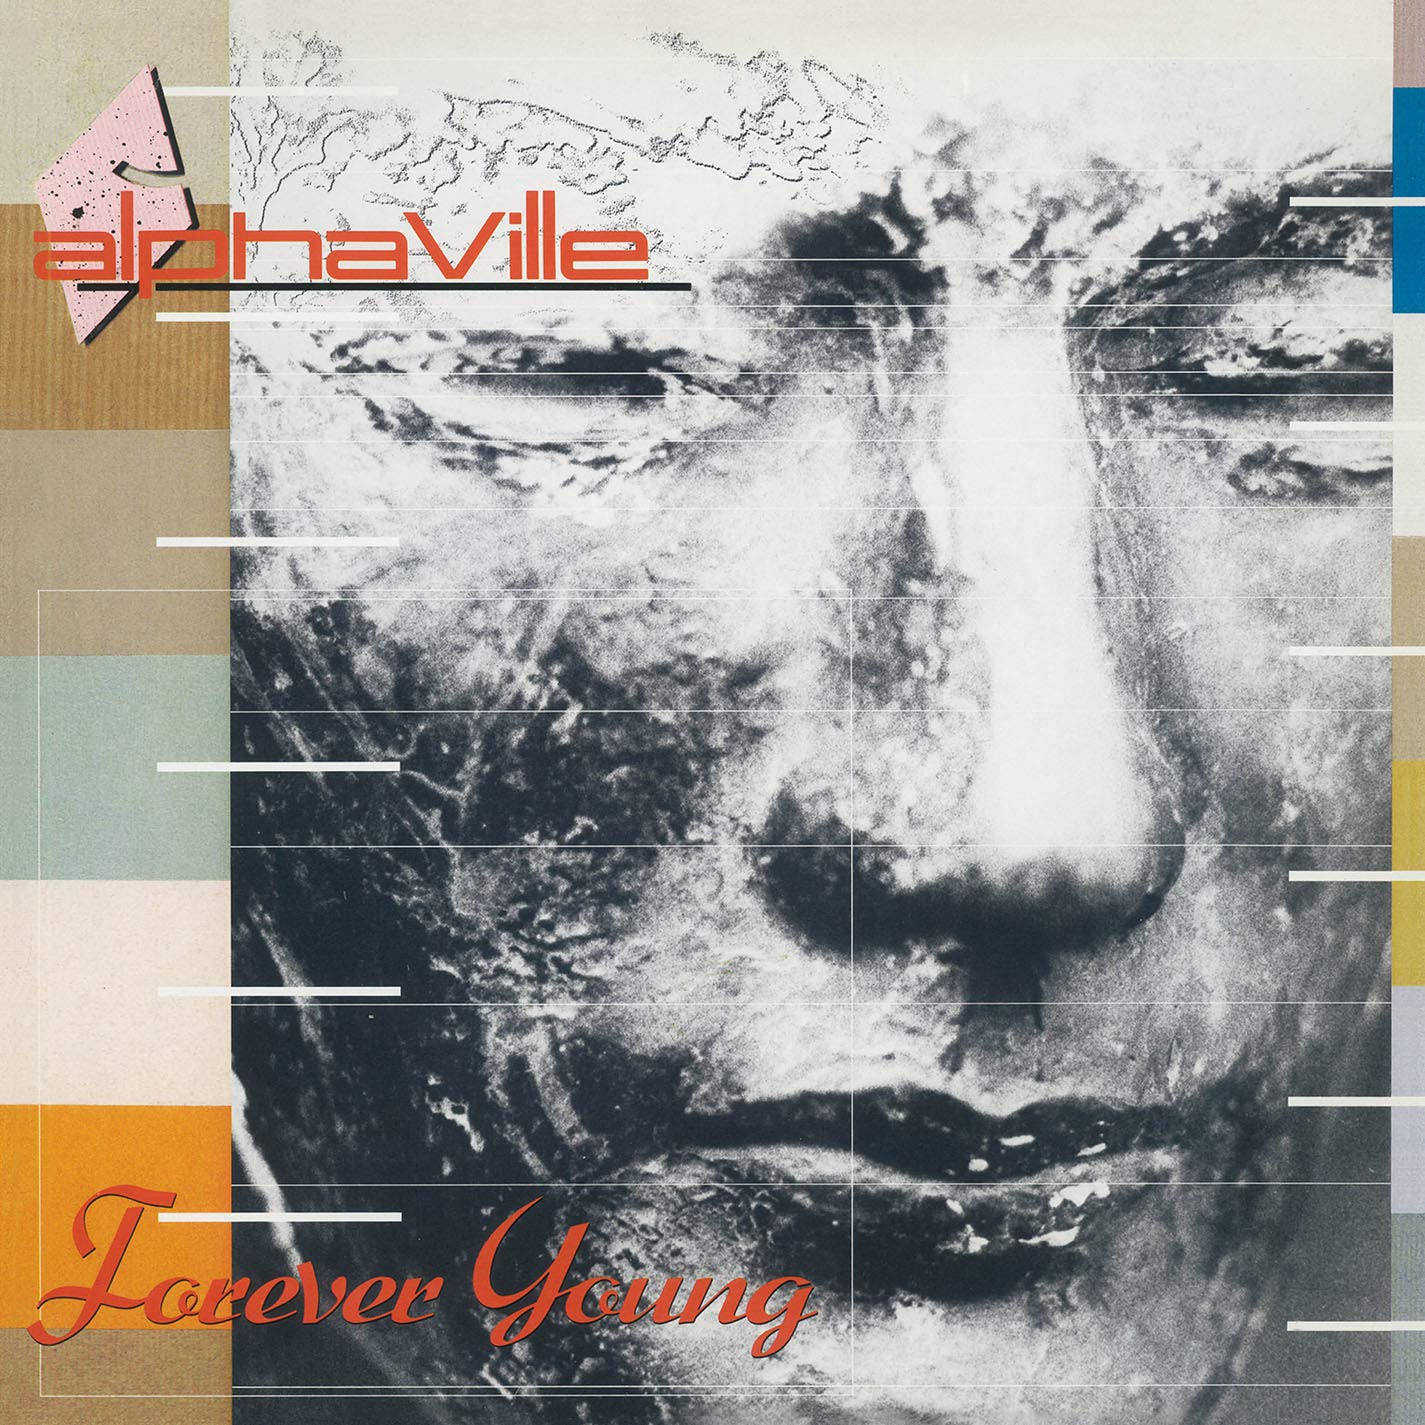 Alphaville - Forever Young: Remastered [Super Deluxe 3CD/1LP/1DVD Boxset]